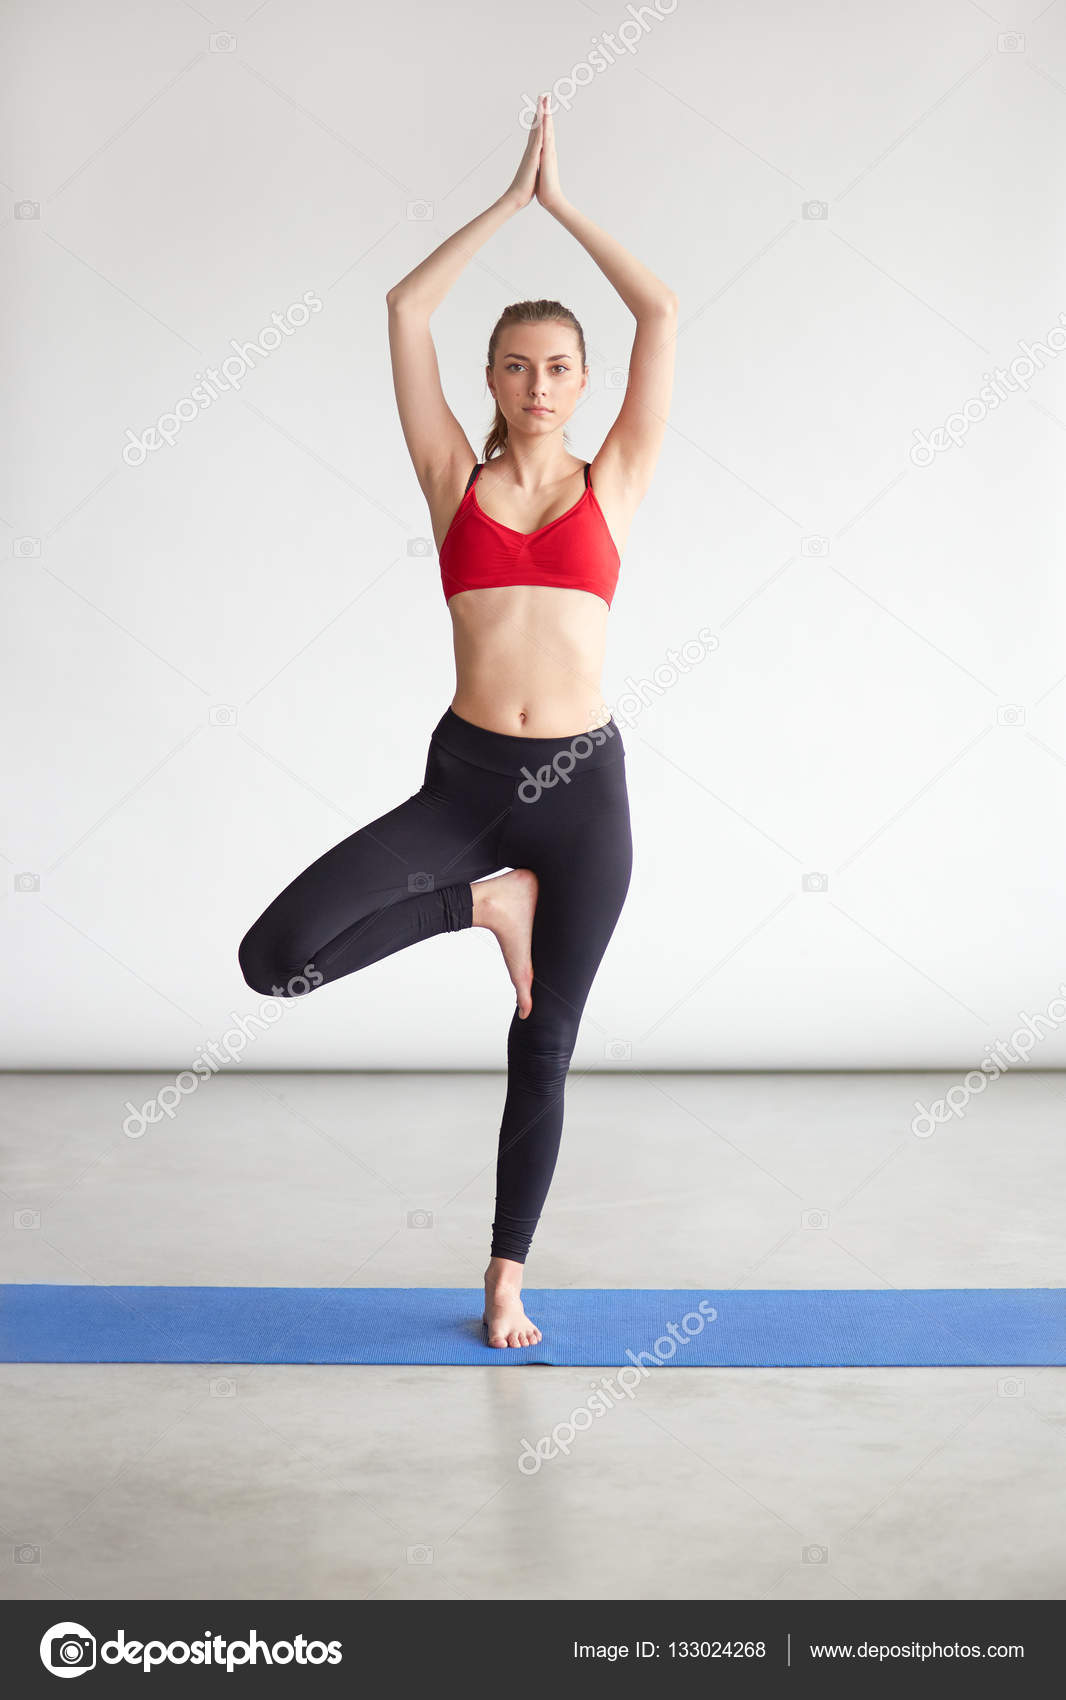 Fit Young Woman Practicing Yoga Exercise Called Tree Pose Girl Standing On One Leg Improving Balance And Concentration Photo By Kegfire